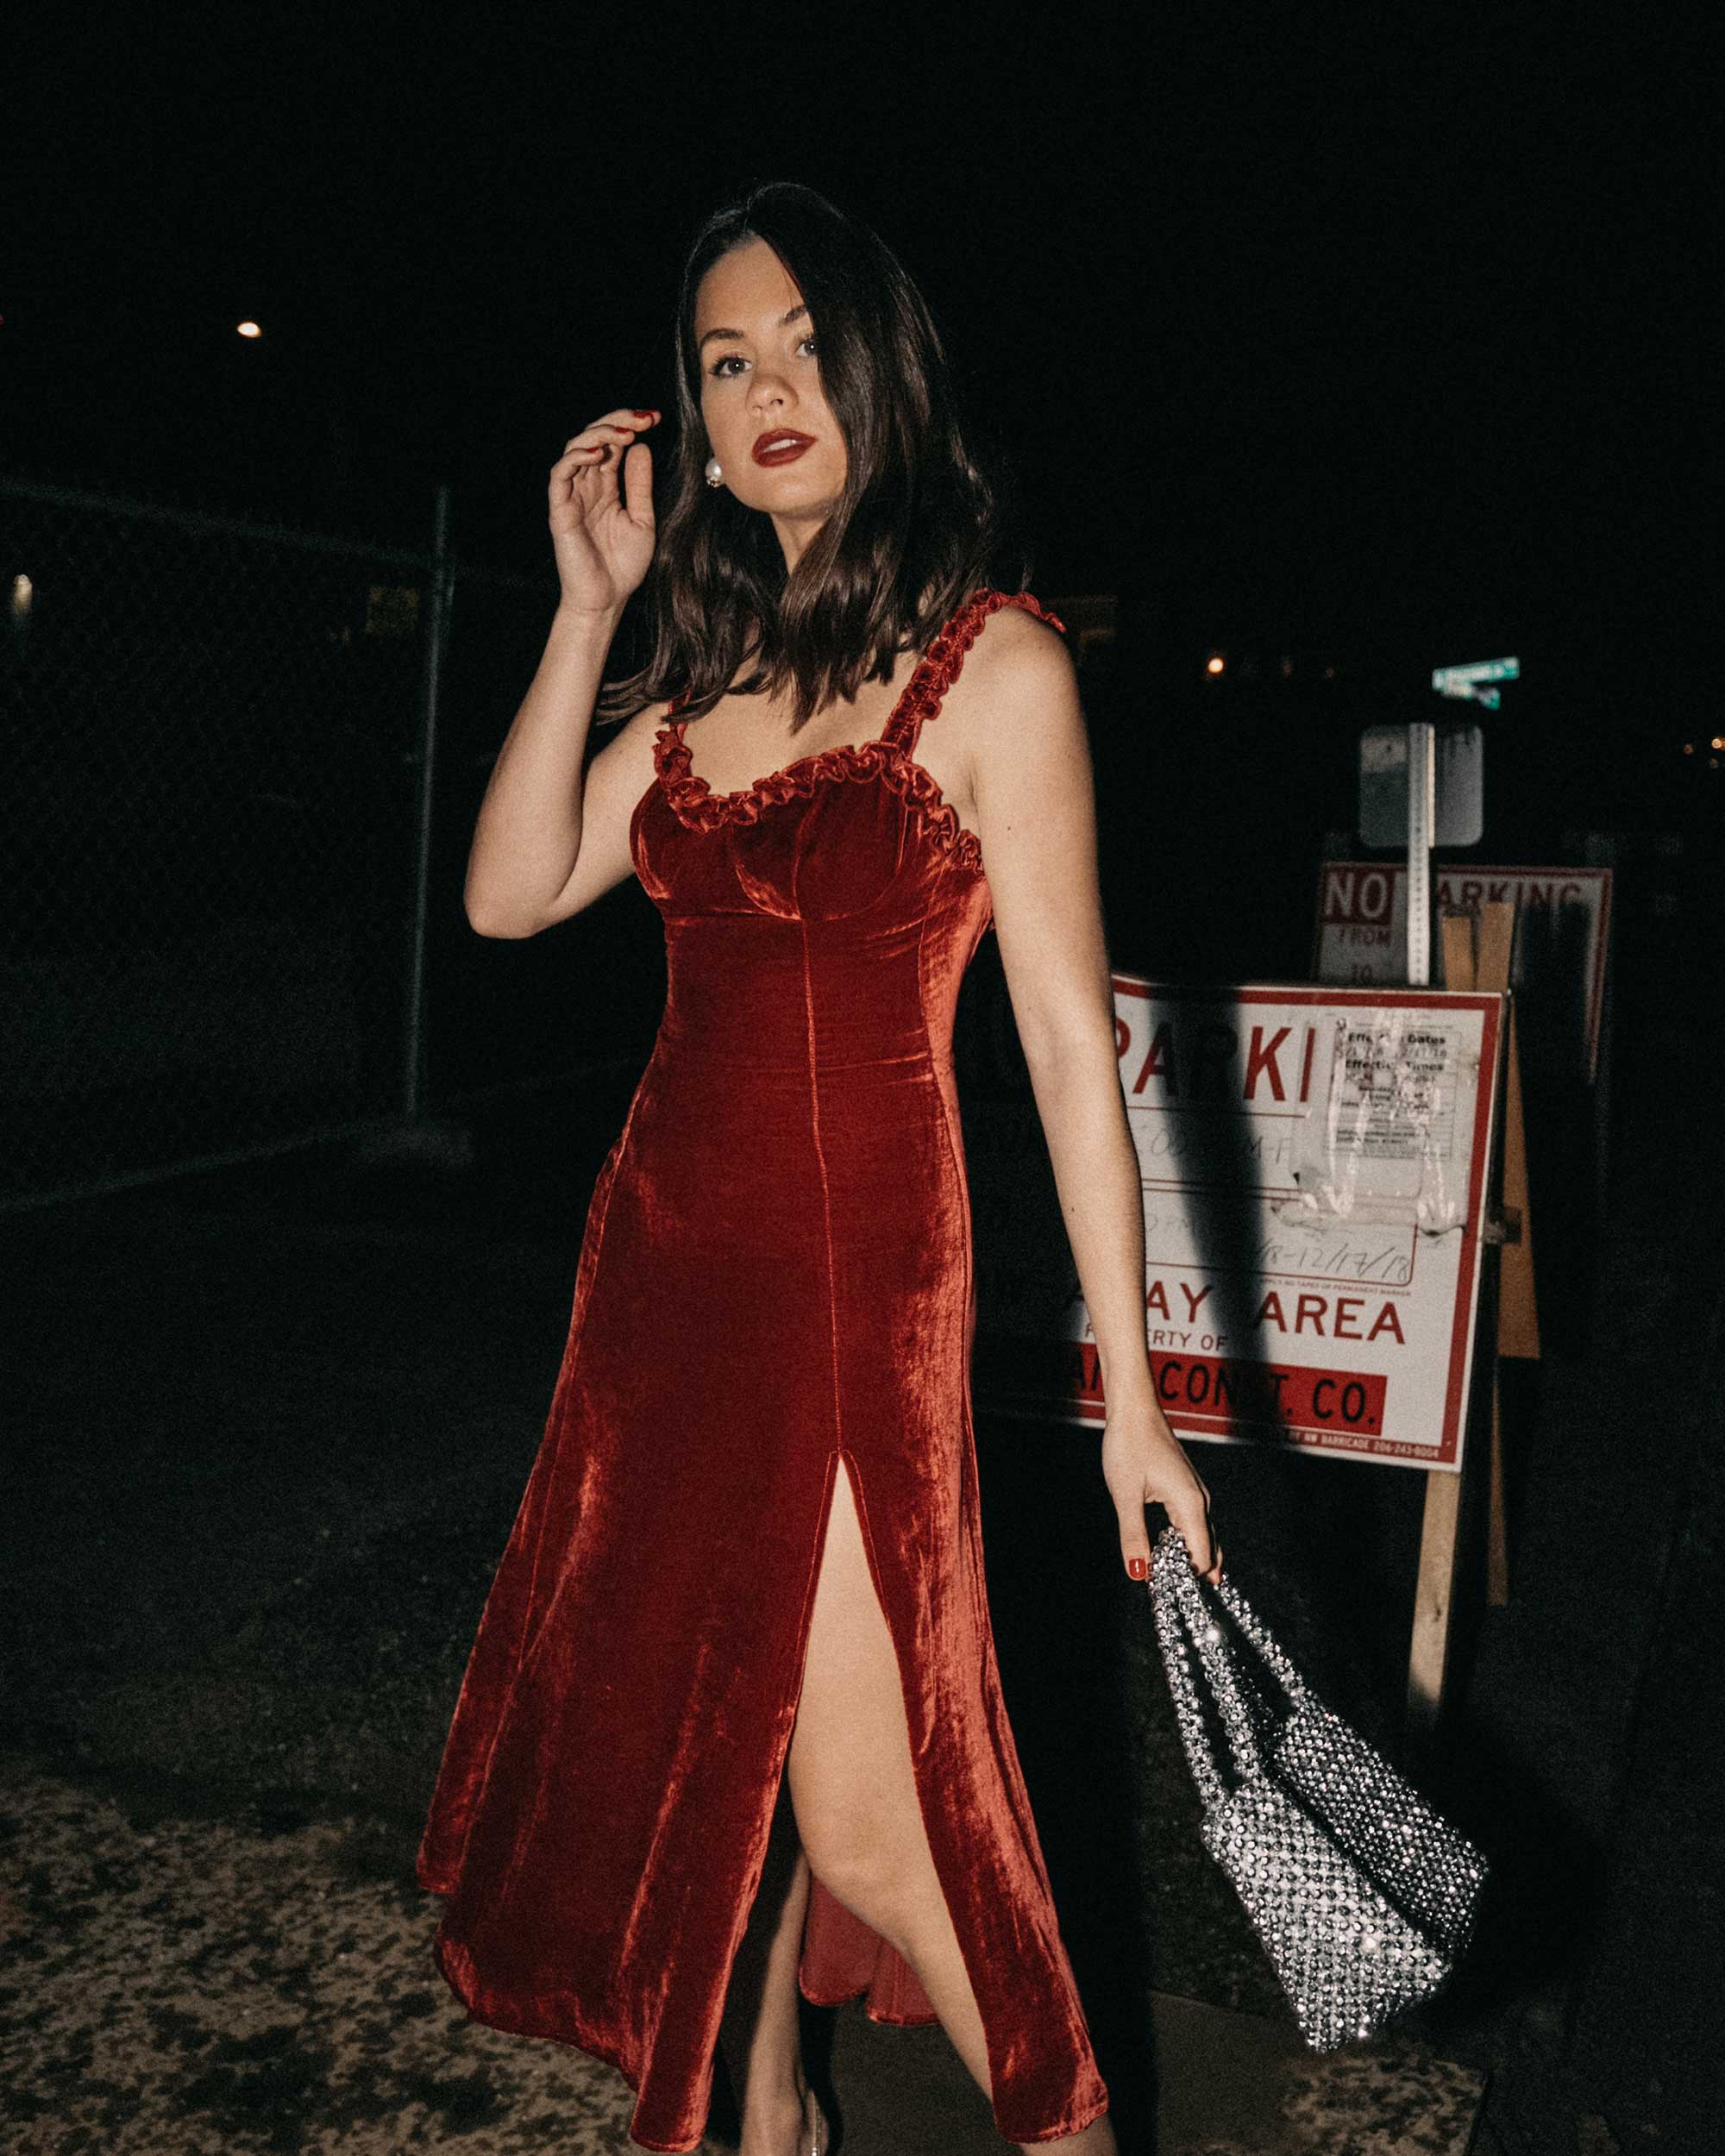 Reformation Pyrenees red velvet midi length dress with a ruffle neckline, and a side slit holiday outfit3.jpg